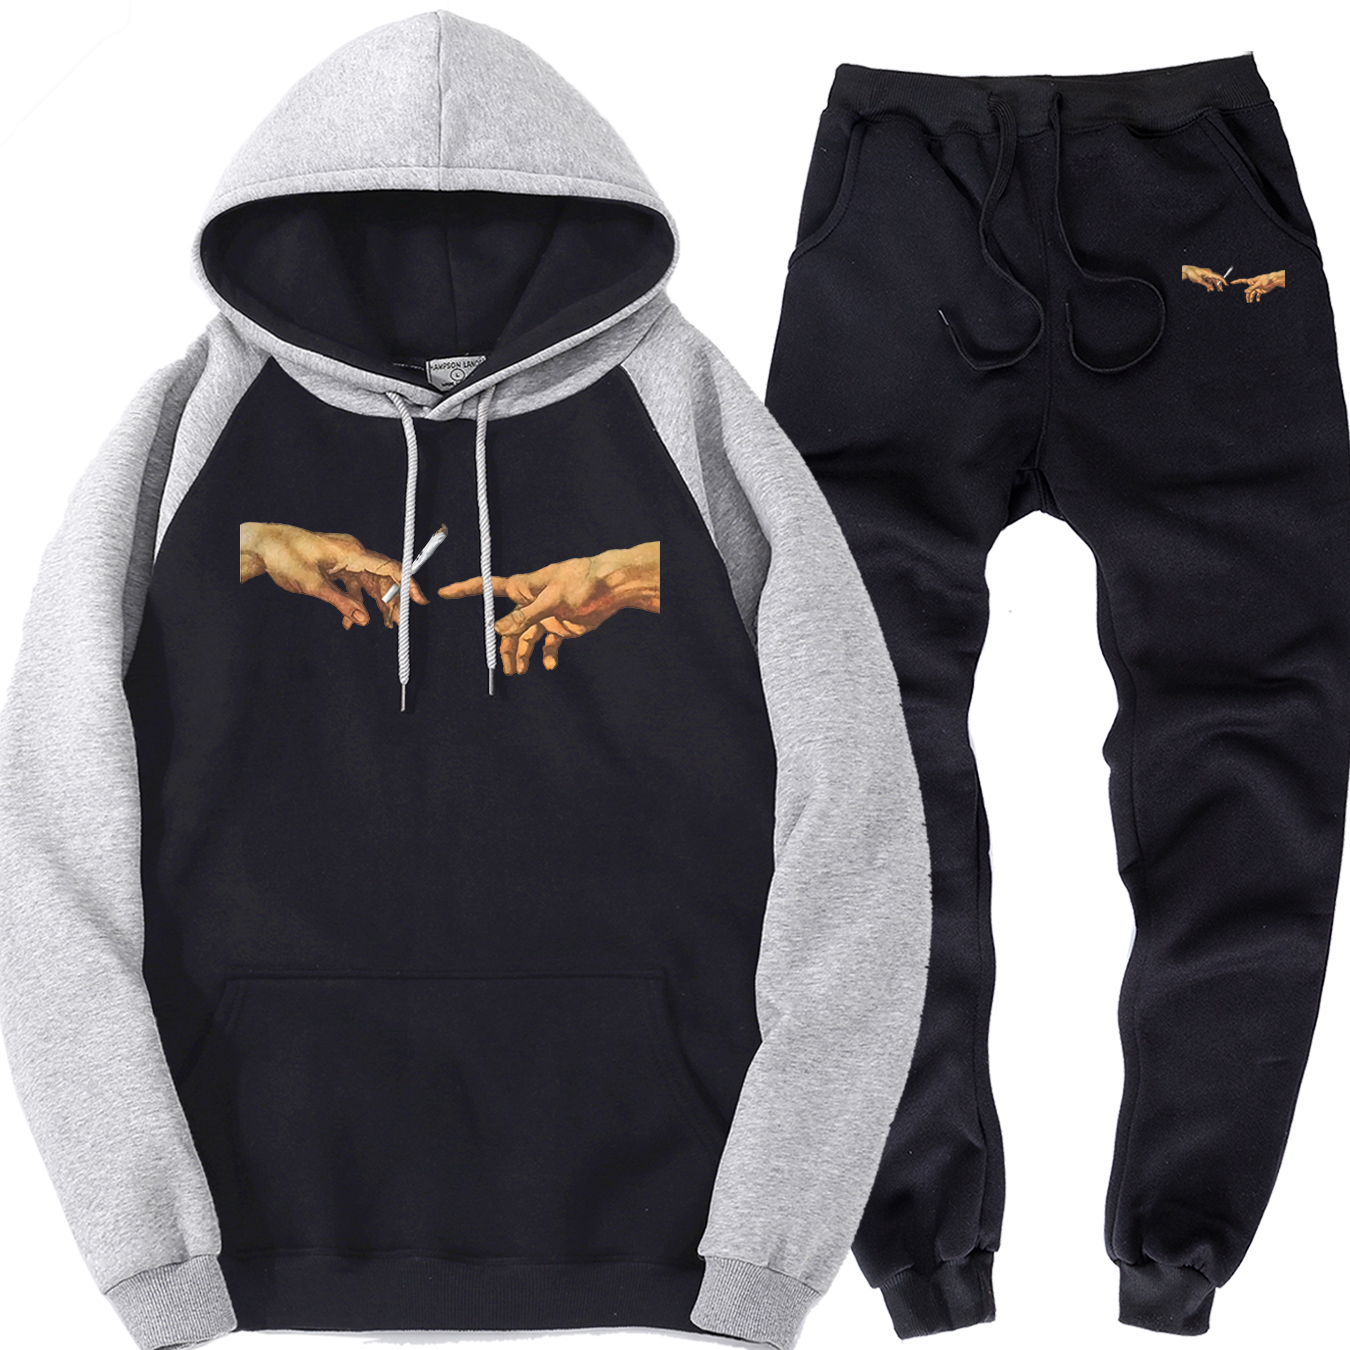 MICHELANGELO Male Fleece Sports Suits Stylish Trousers Men  Warm Raglan Hoodies Streetwear Harajuku Clothing Tracksuit Men Sets